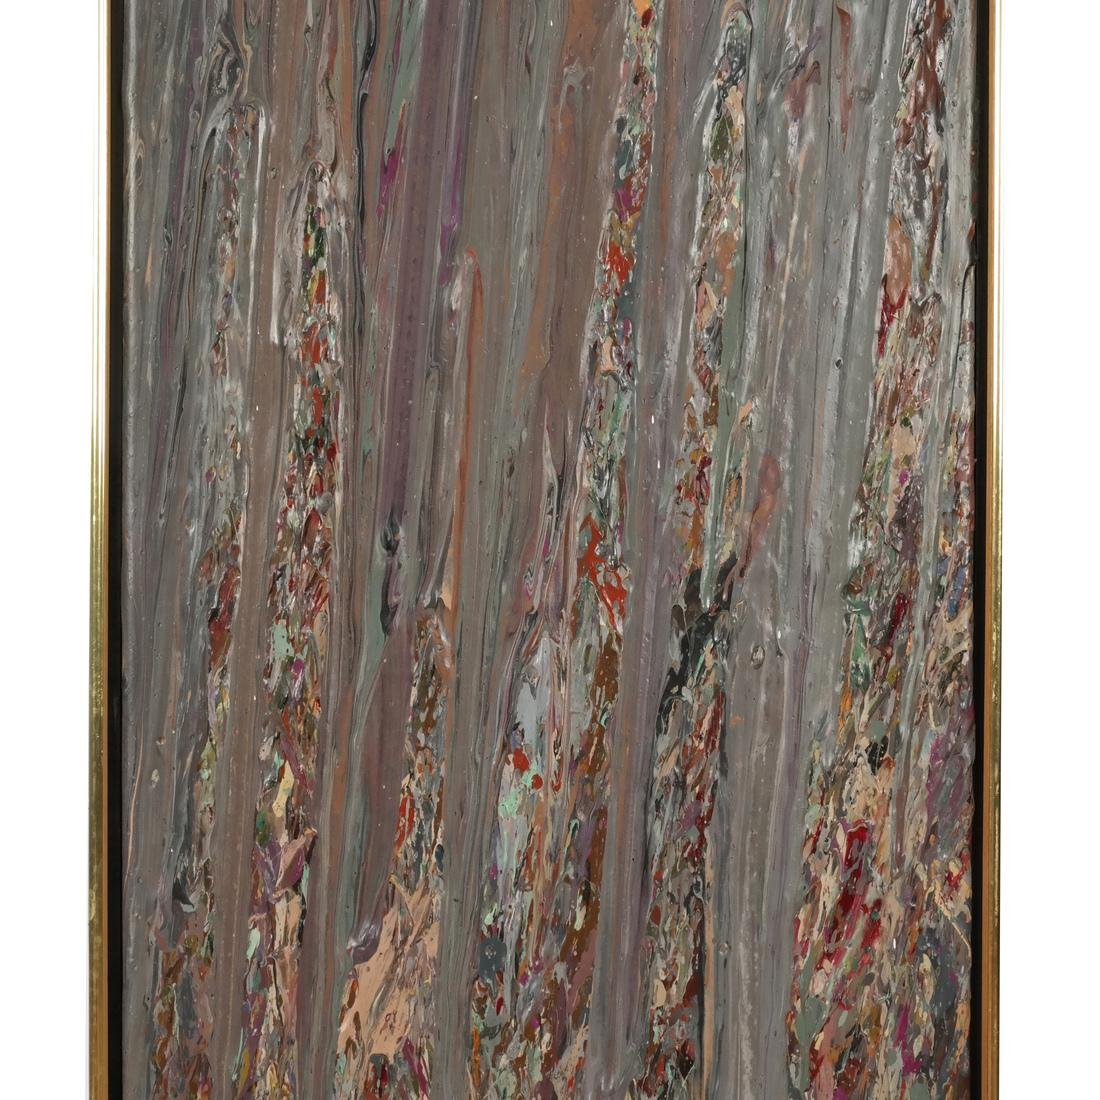 Larry Poons, Untitled - 6